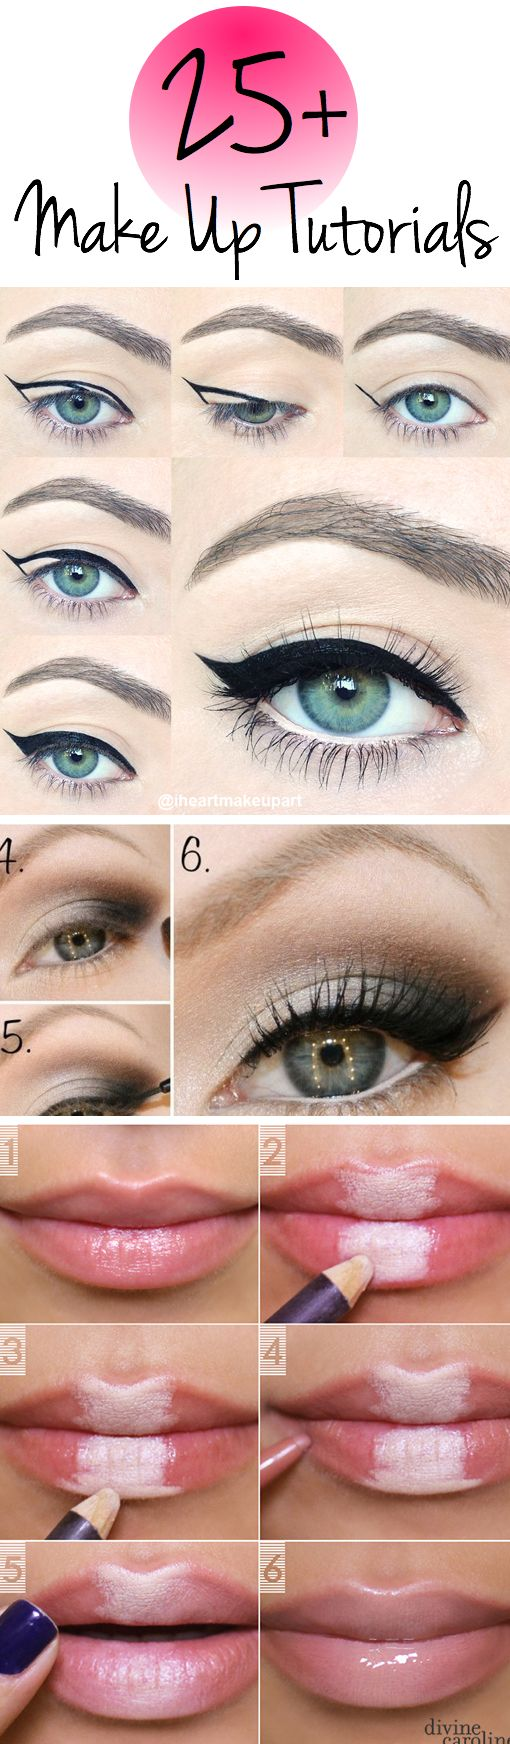 25+ Make Up Tutorials To Take Your Beauty To The Next Level 23 Best Ideas